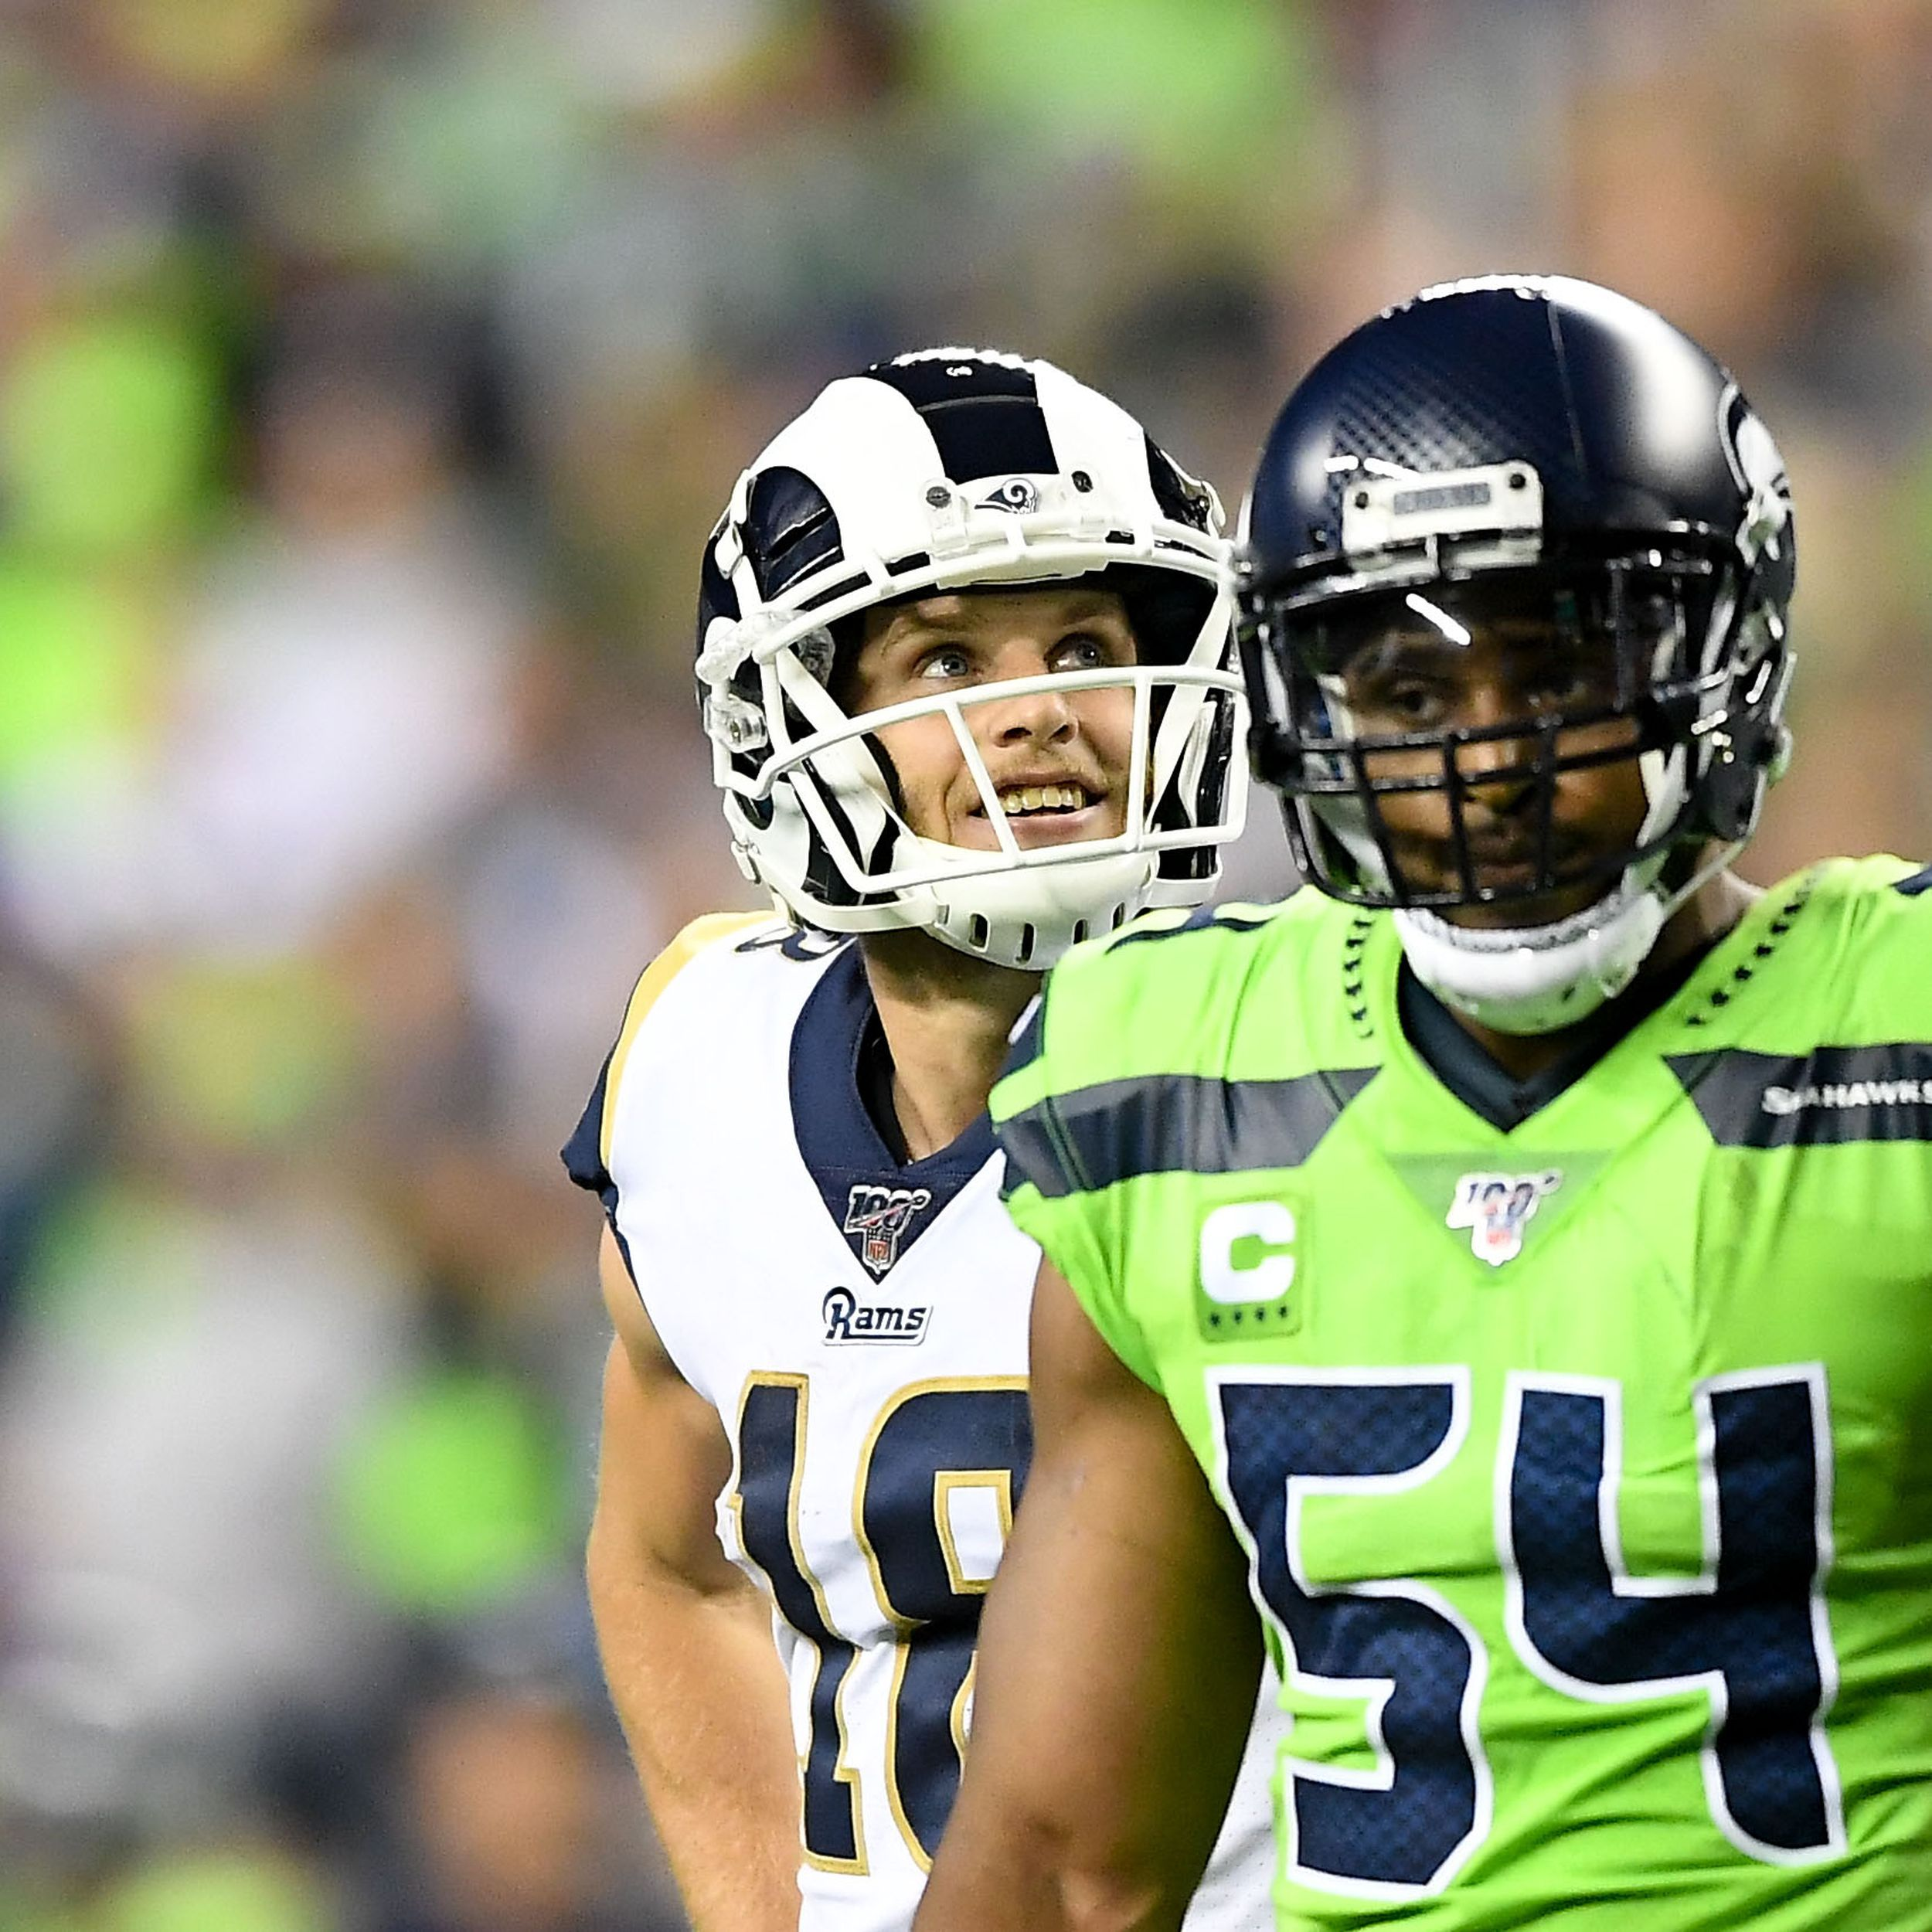 In Seahawks Heavy Washington Cooper Kupp S Family Keeps Los Angeles Rams And Ewu Allegiance Strong The Spokesman Review